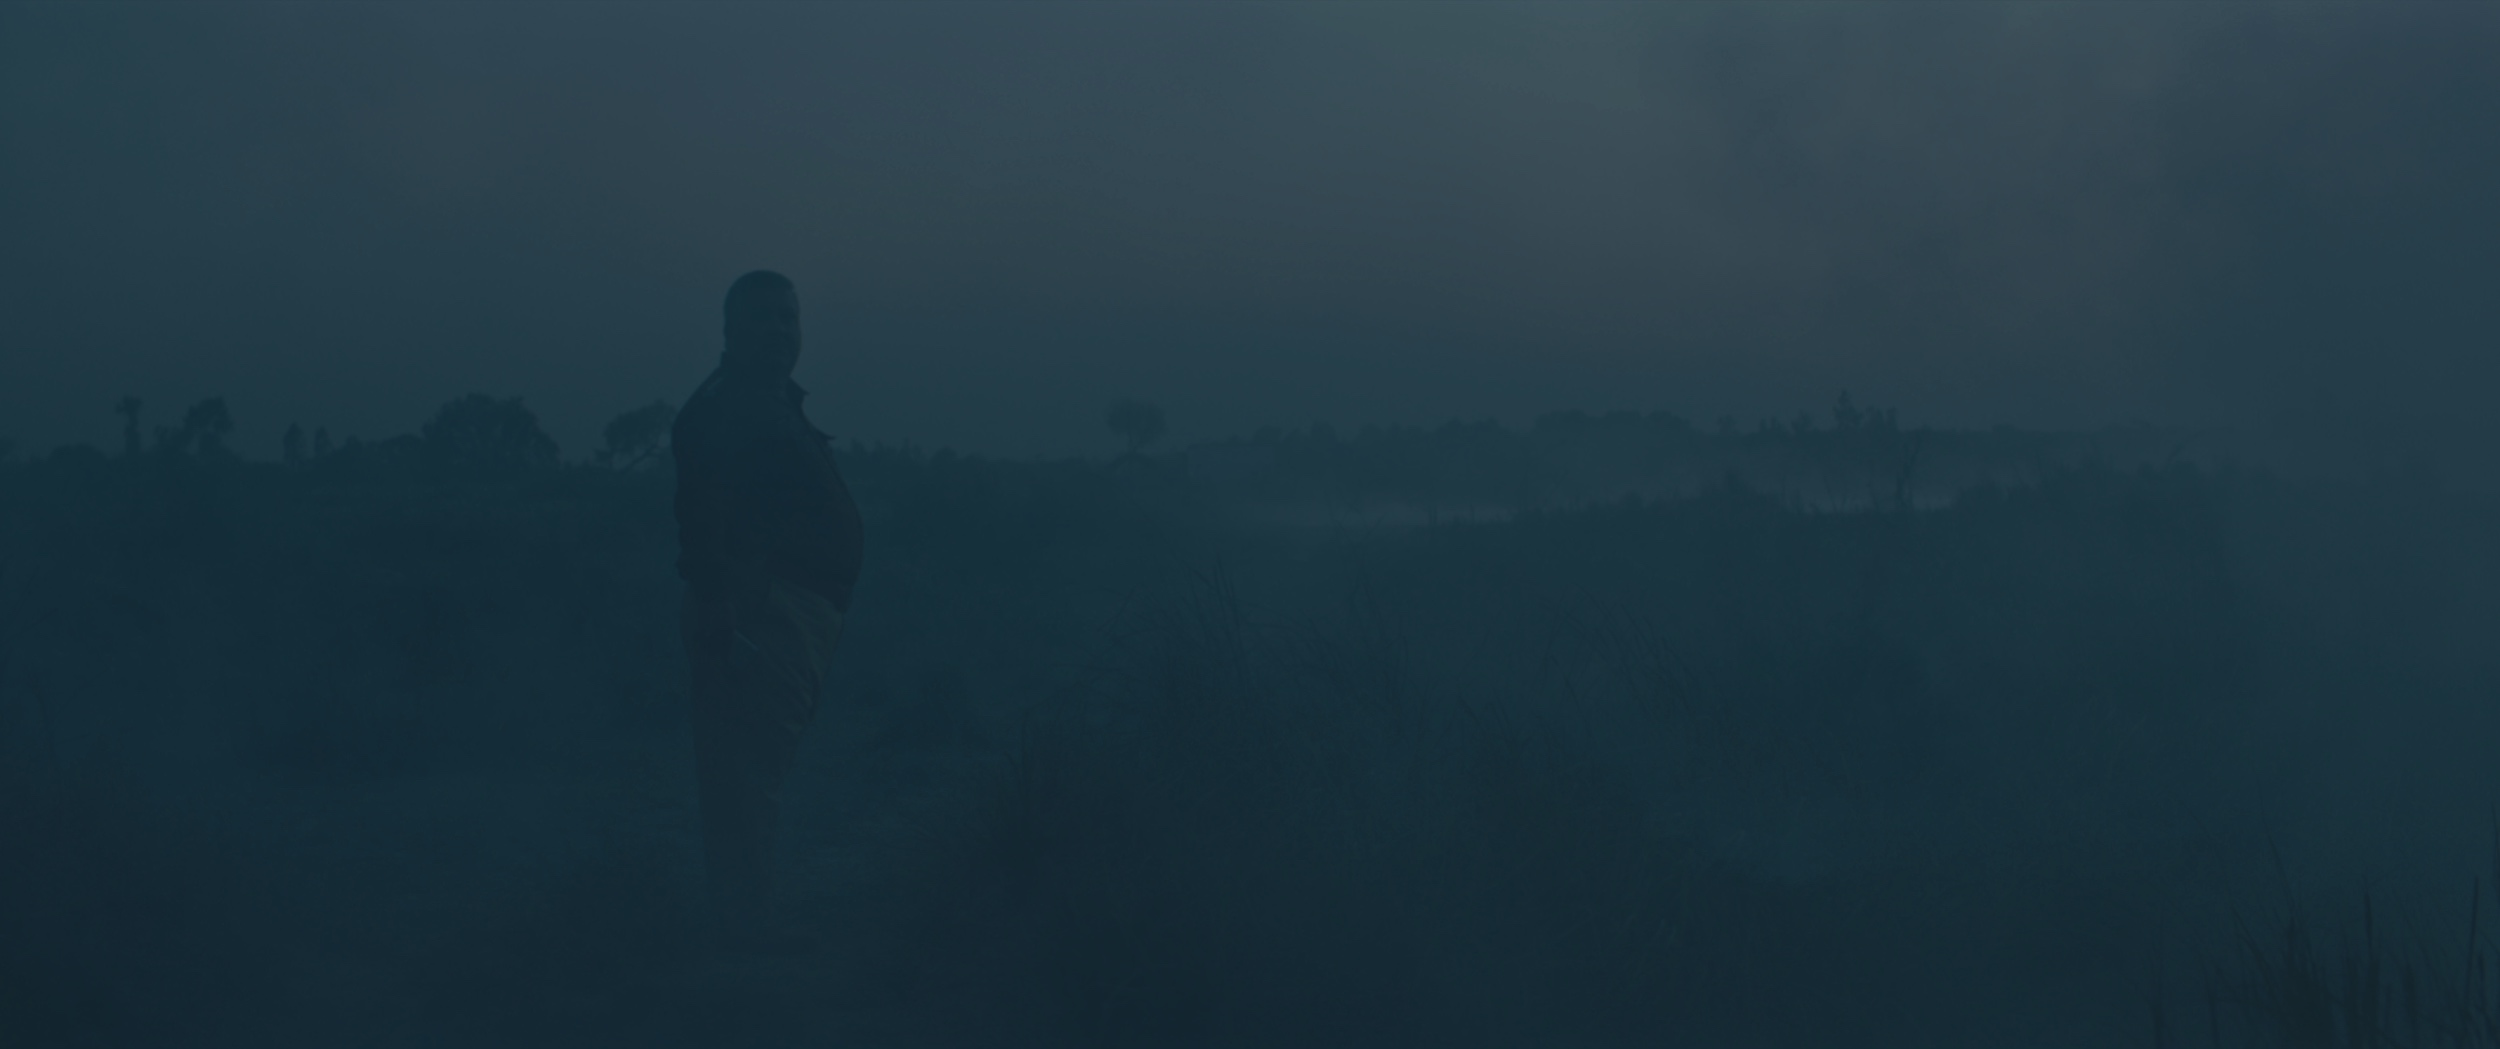 Village and Fog 007.png